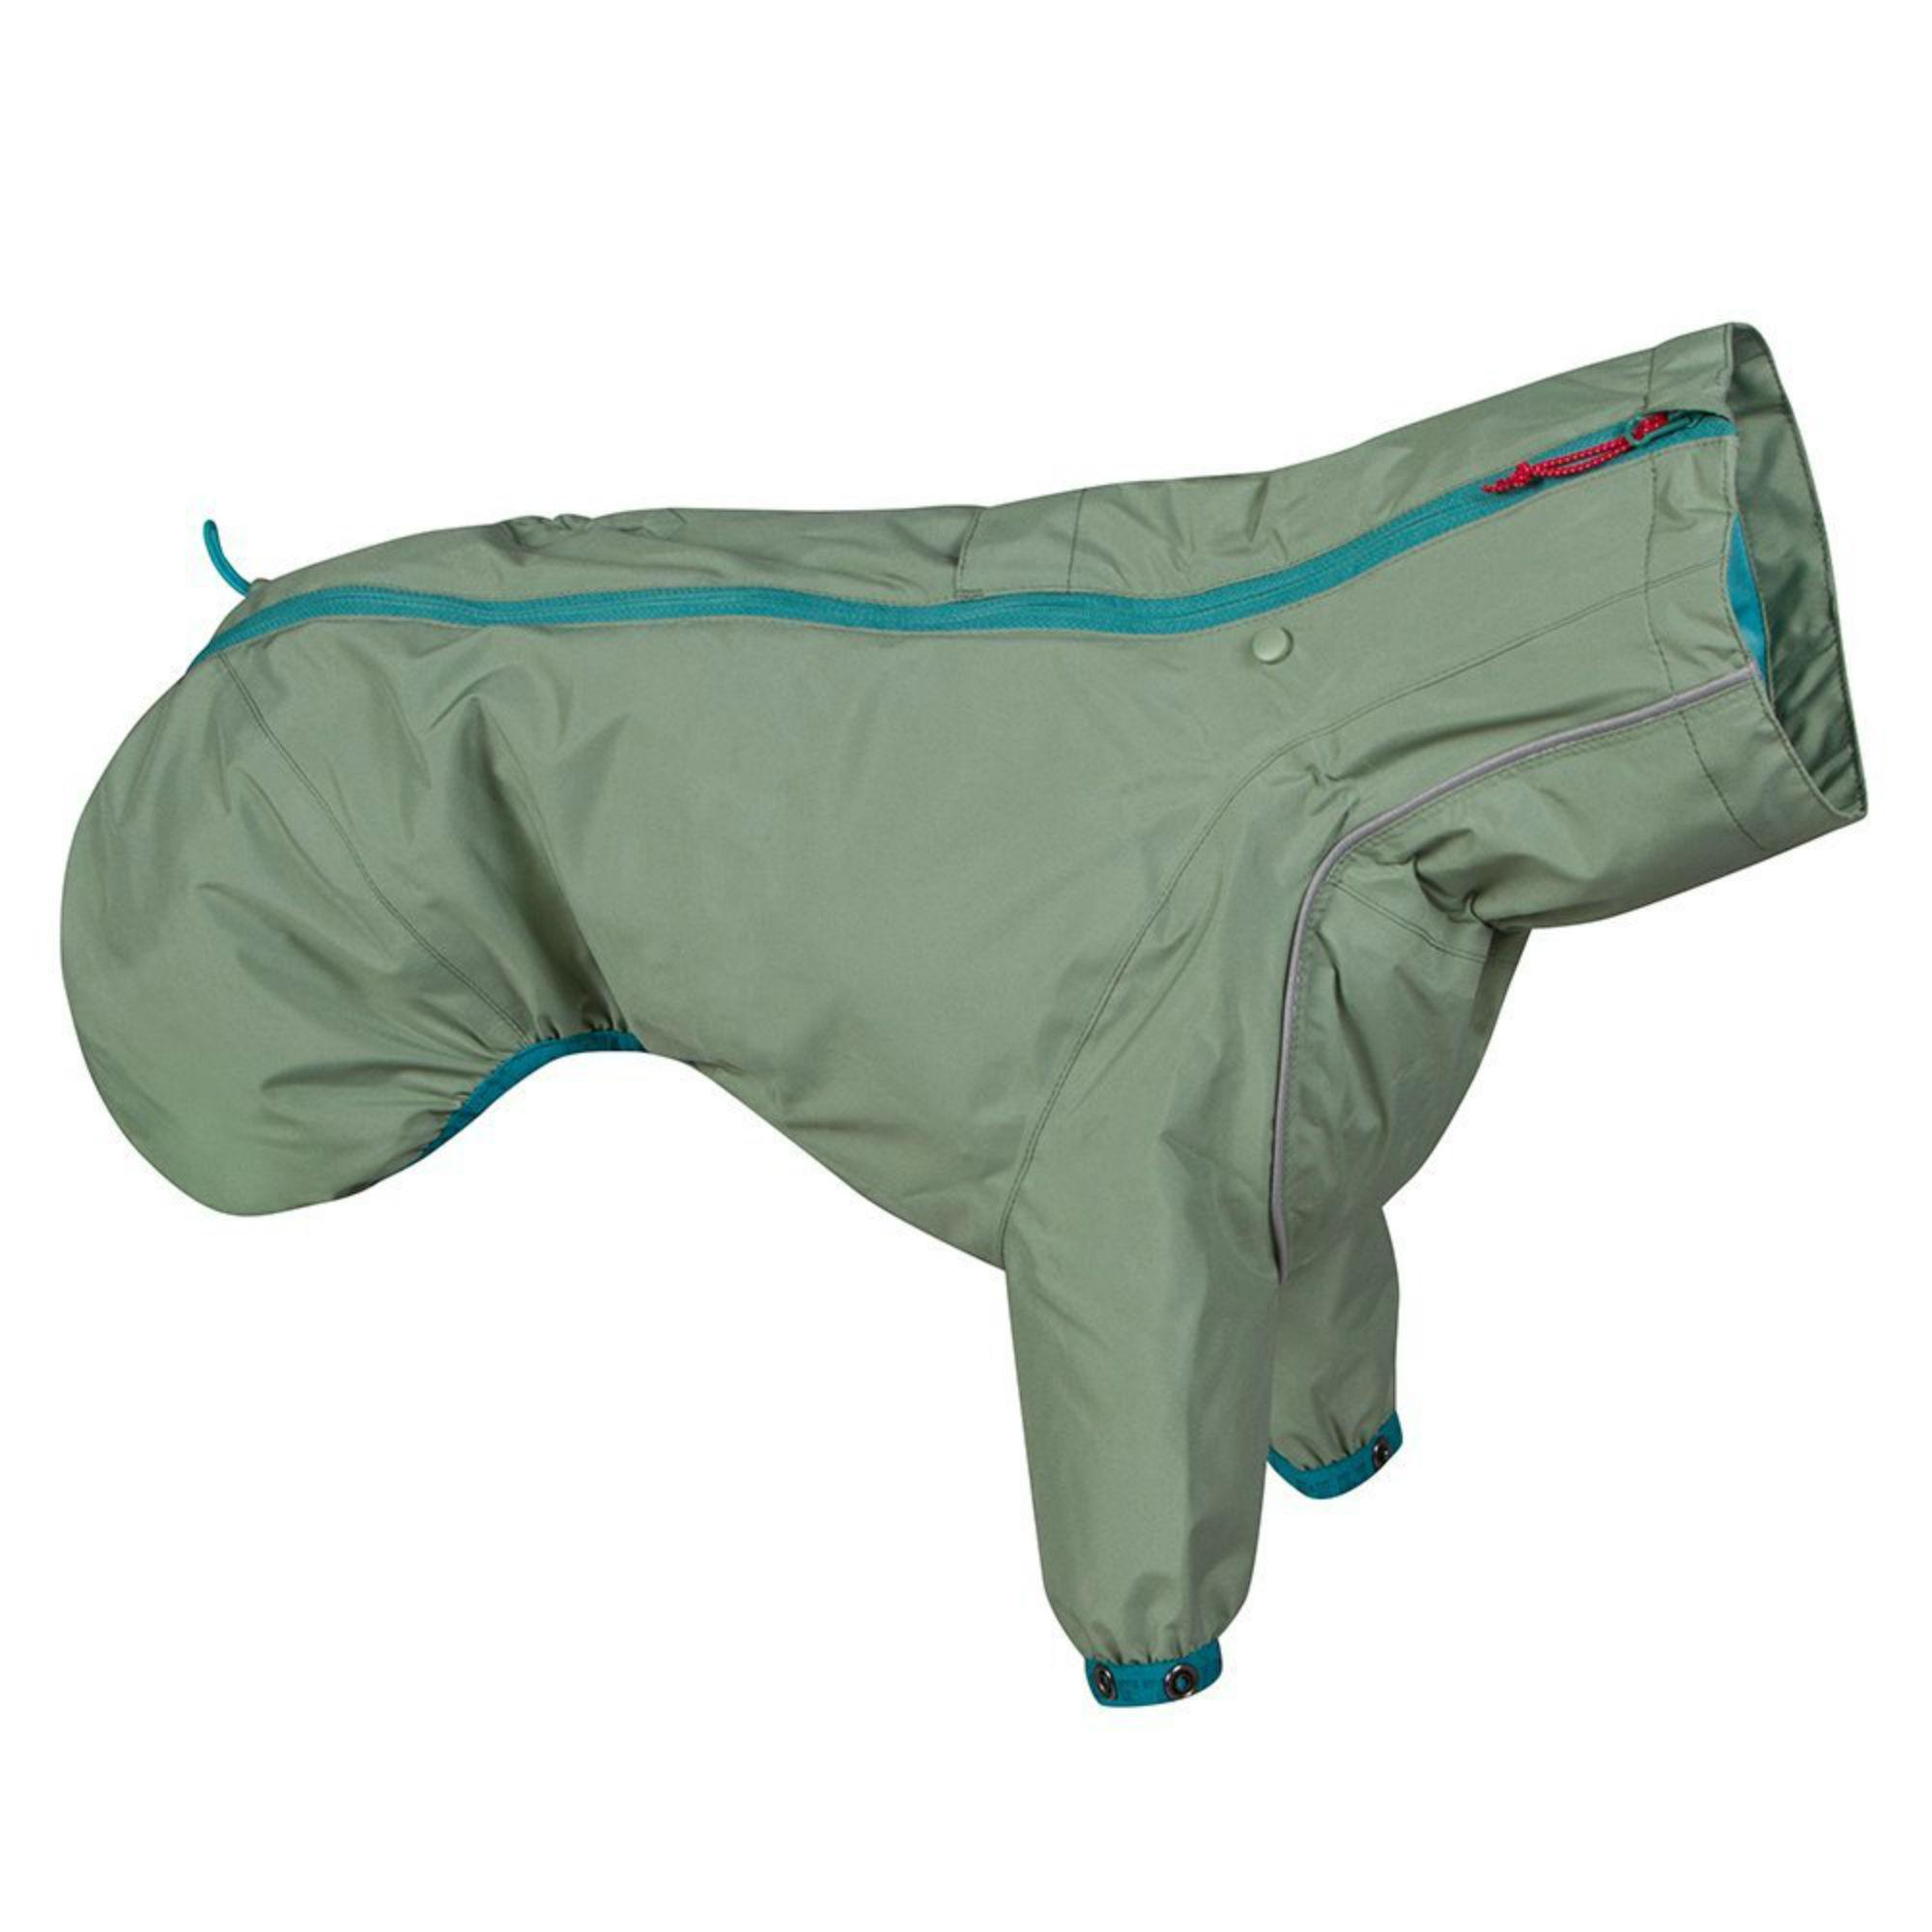 Hurtta Rain Blocker ECO Dog Coat - Hedge